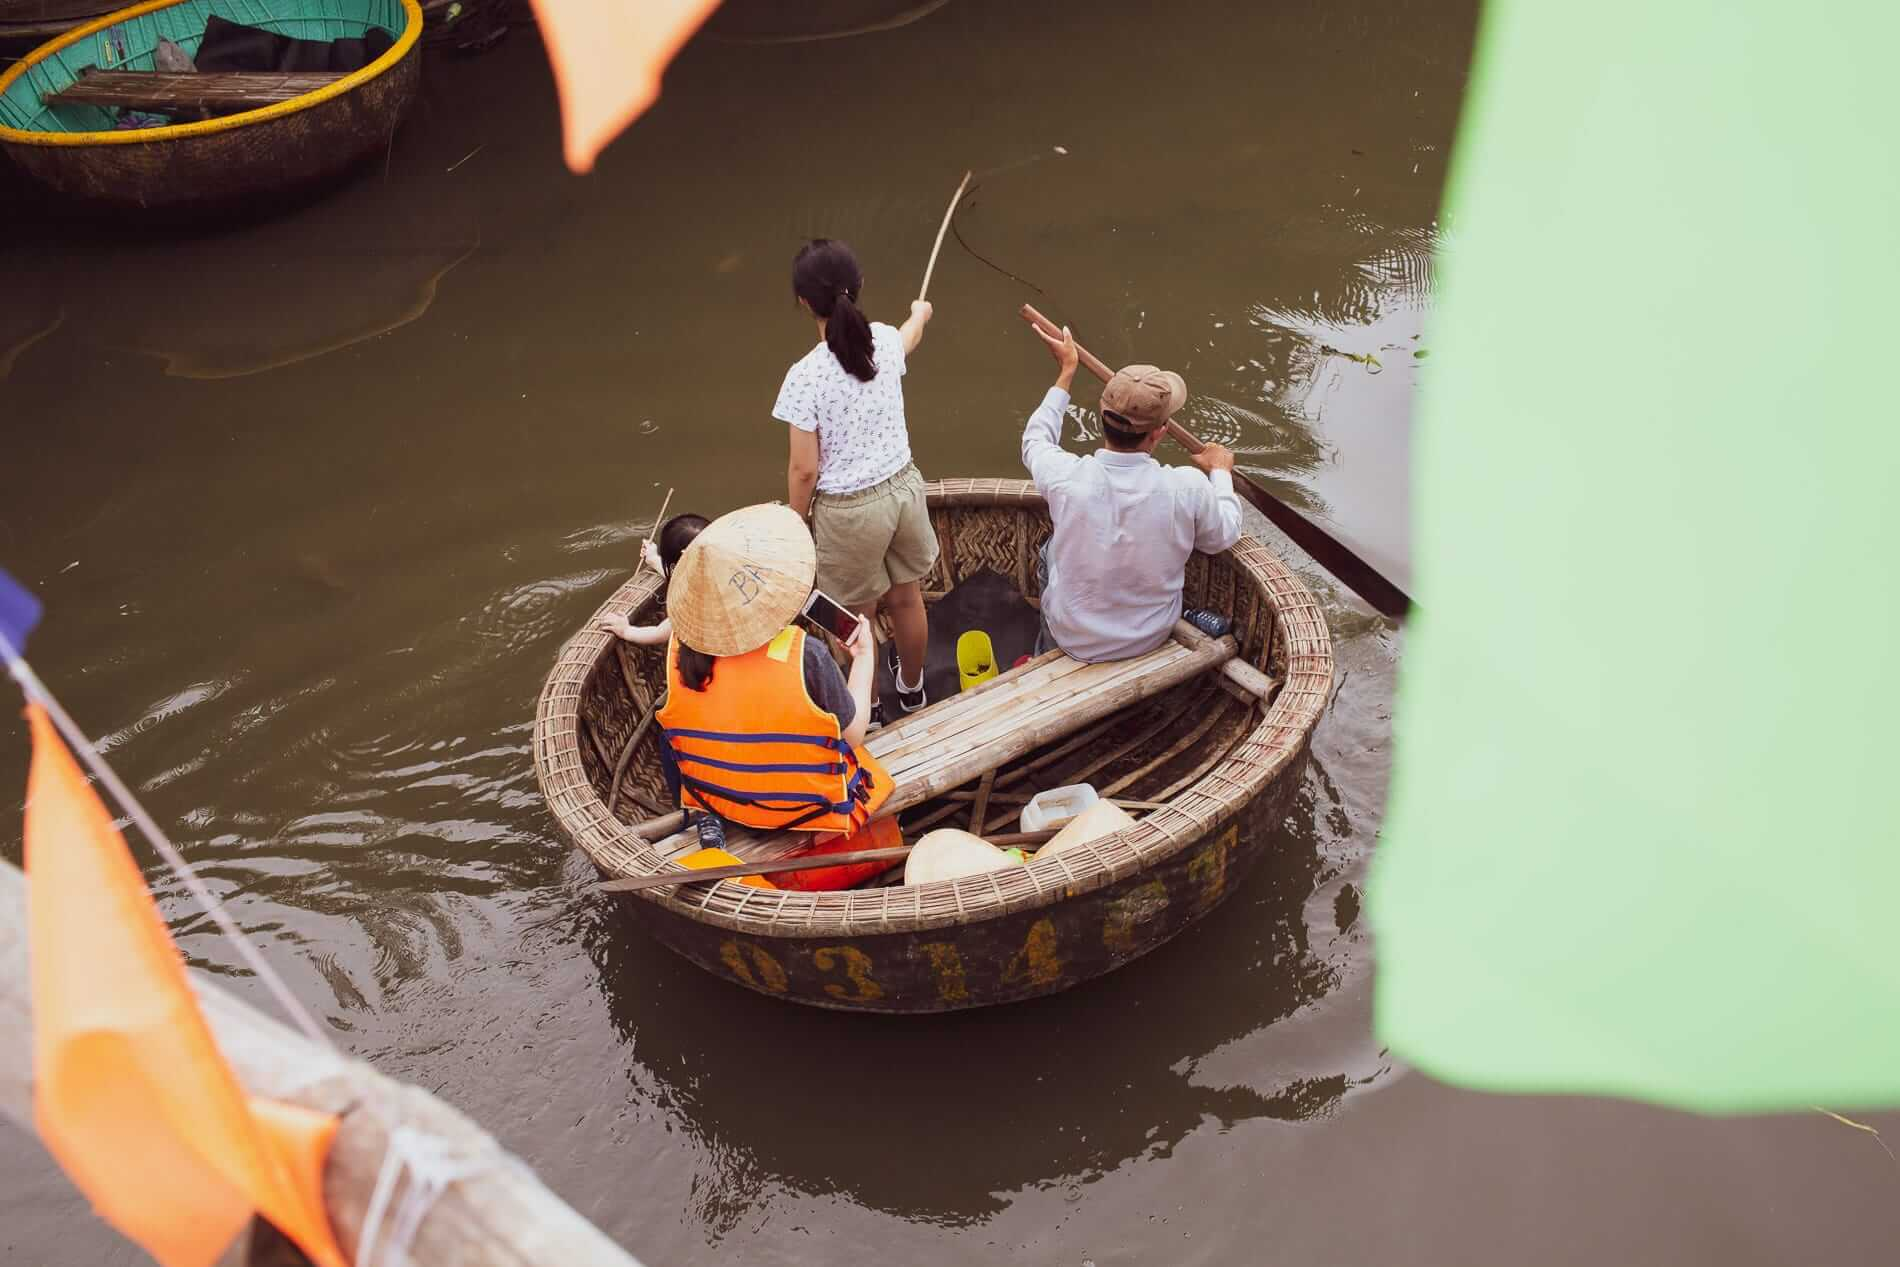 a basket boat with travellers